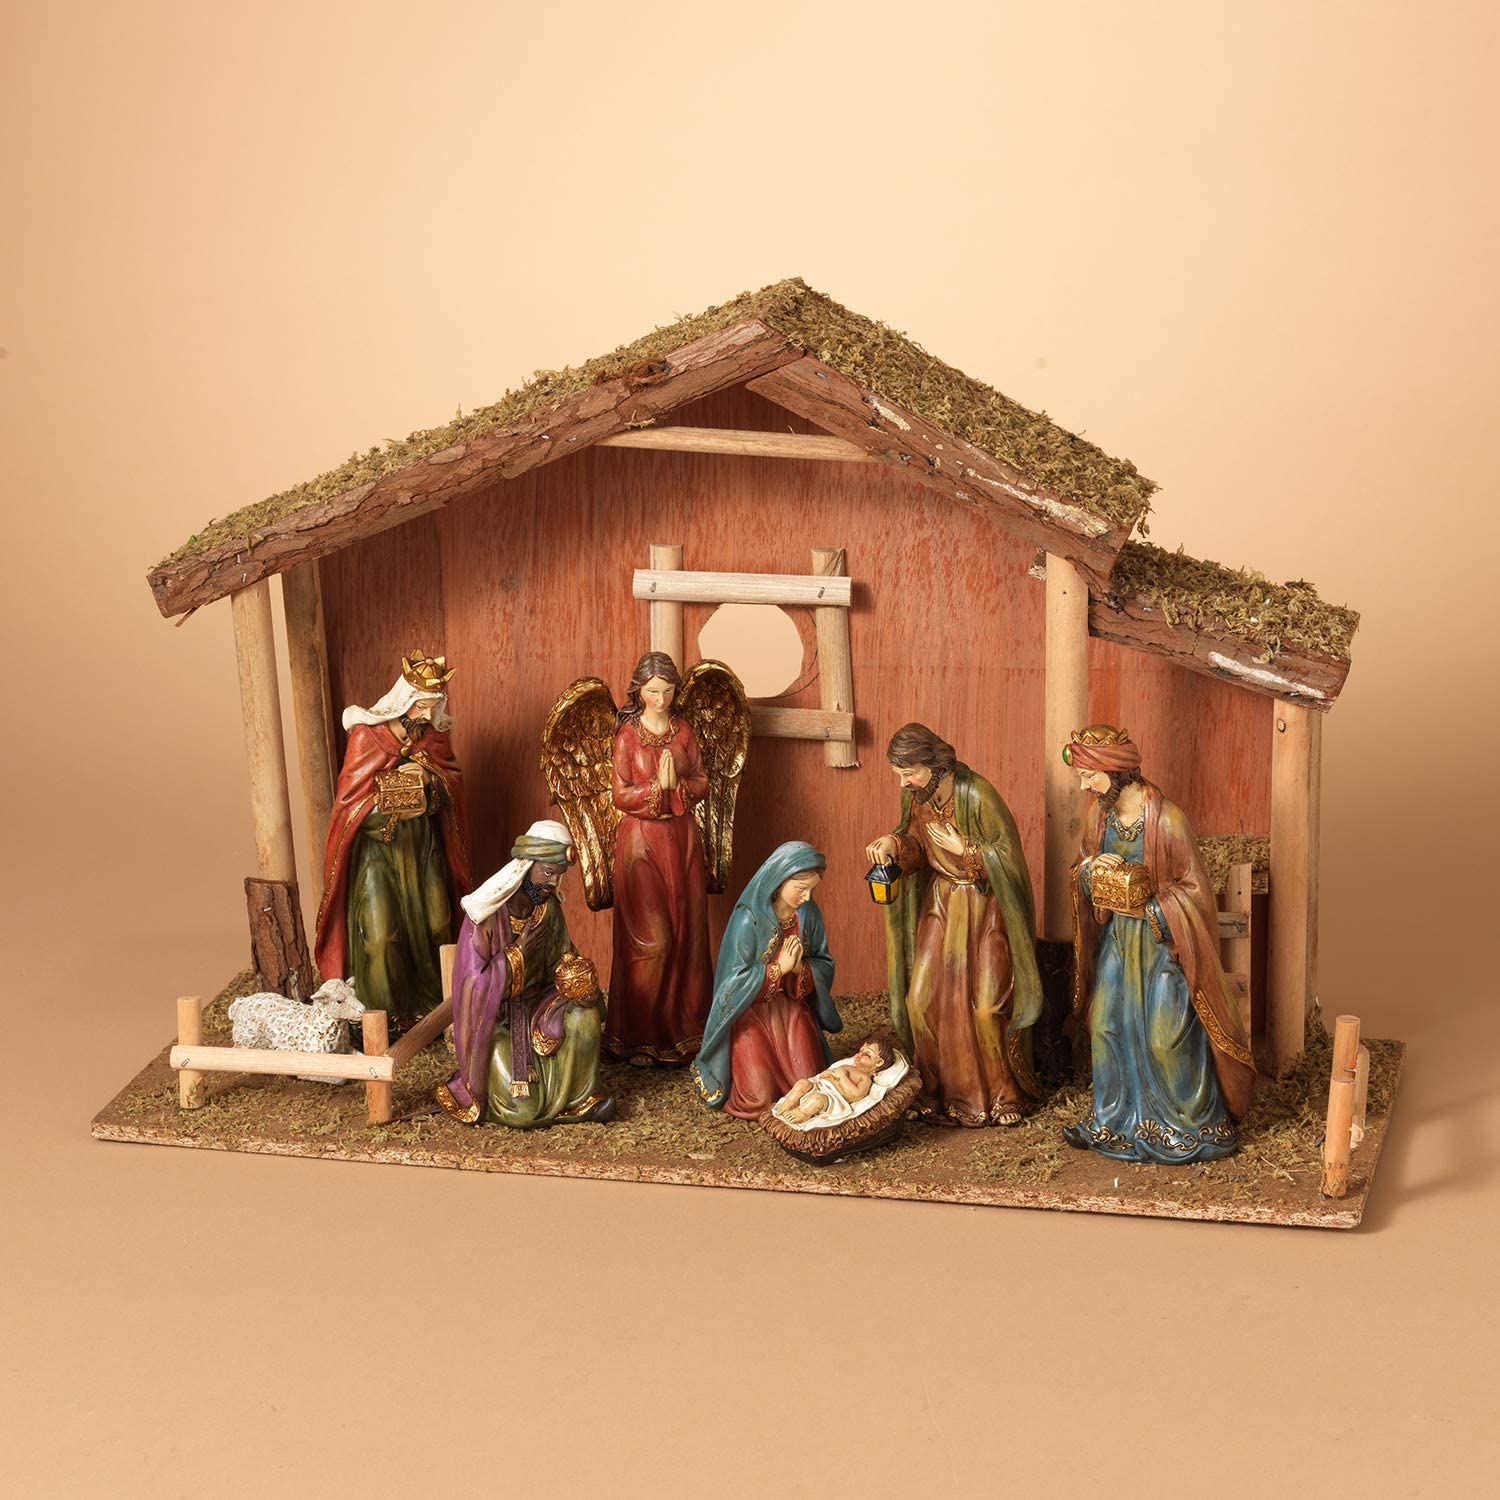 Rustic 9-Piece Traditional Nativity Set with Moss Stable – Tabletop Christian Christmas Decoration – Holiday Home Decor with Religious Figurines and Creche